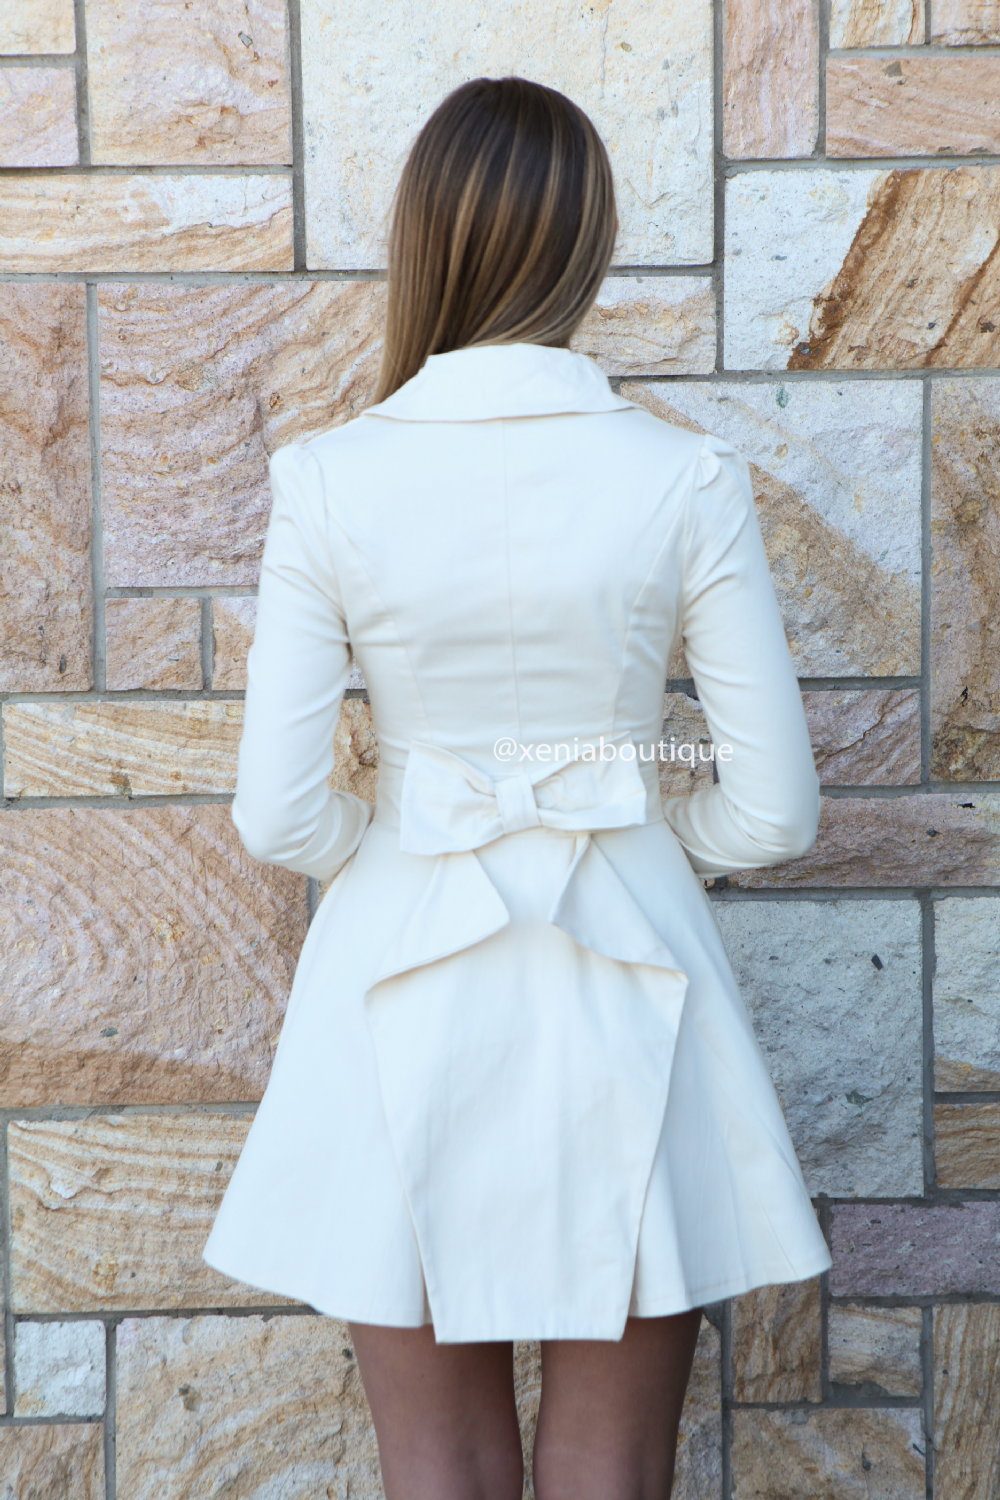 FROM PARIS WITH LOVE  JACKET , DRESSES, TOPS, BOTTOMS, JACKETS & JUMPERS, ACCESSORIES, SALE, PRE ORDER, NEW ARRIVALS, PLAYSUIT, COLOUR, GIFT CERTIFICATE,,White,Brown Australia, Queensland, Brisbane